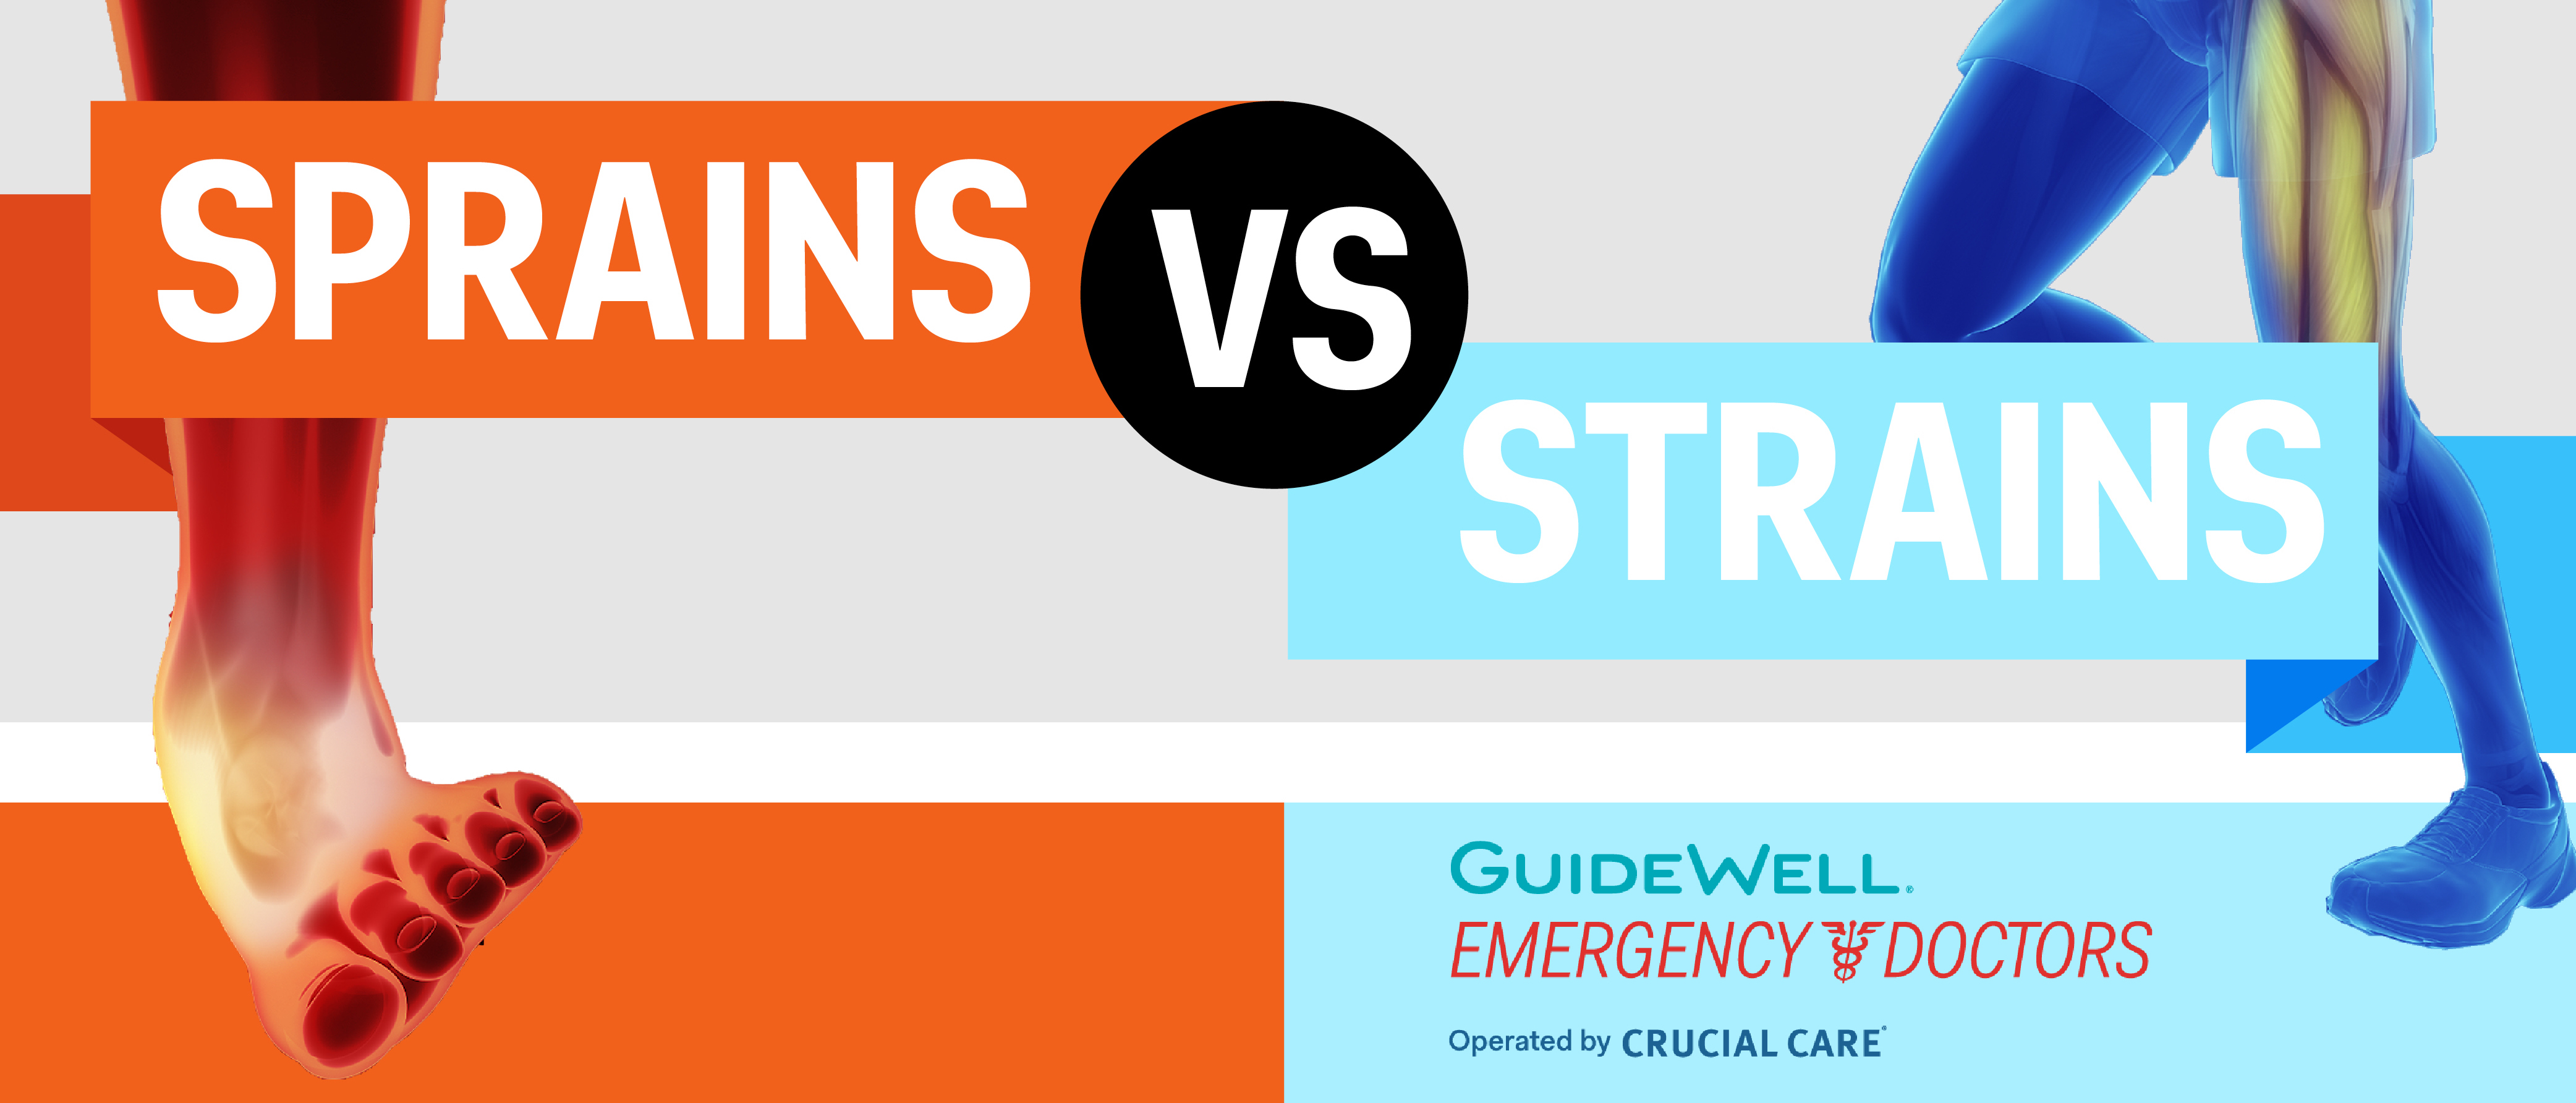 GuideWell Emergency Doctor treats sprains